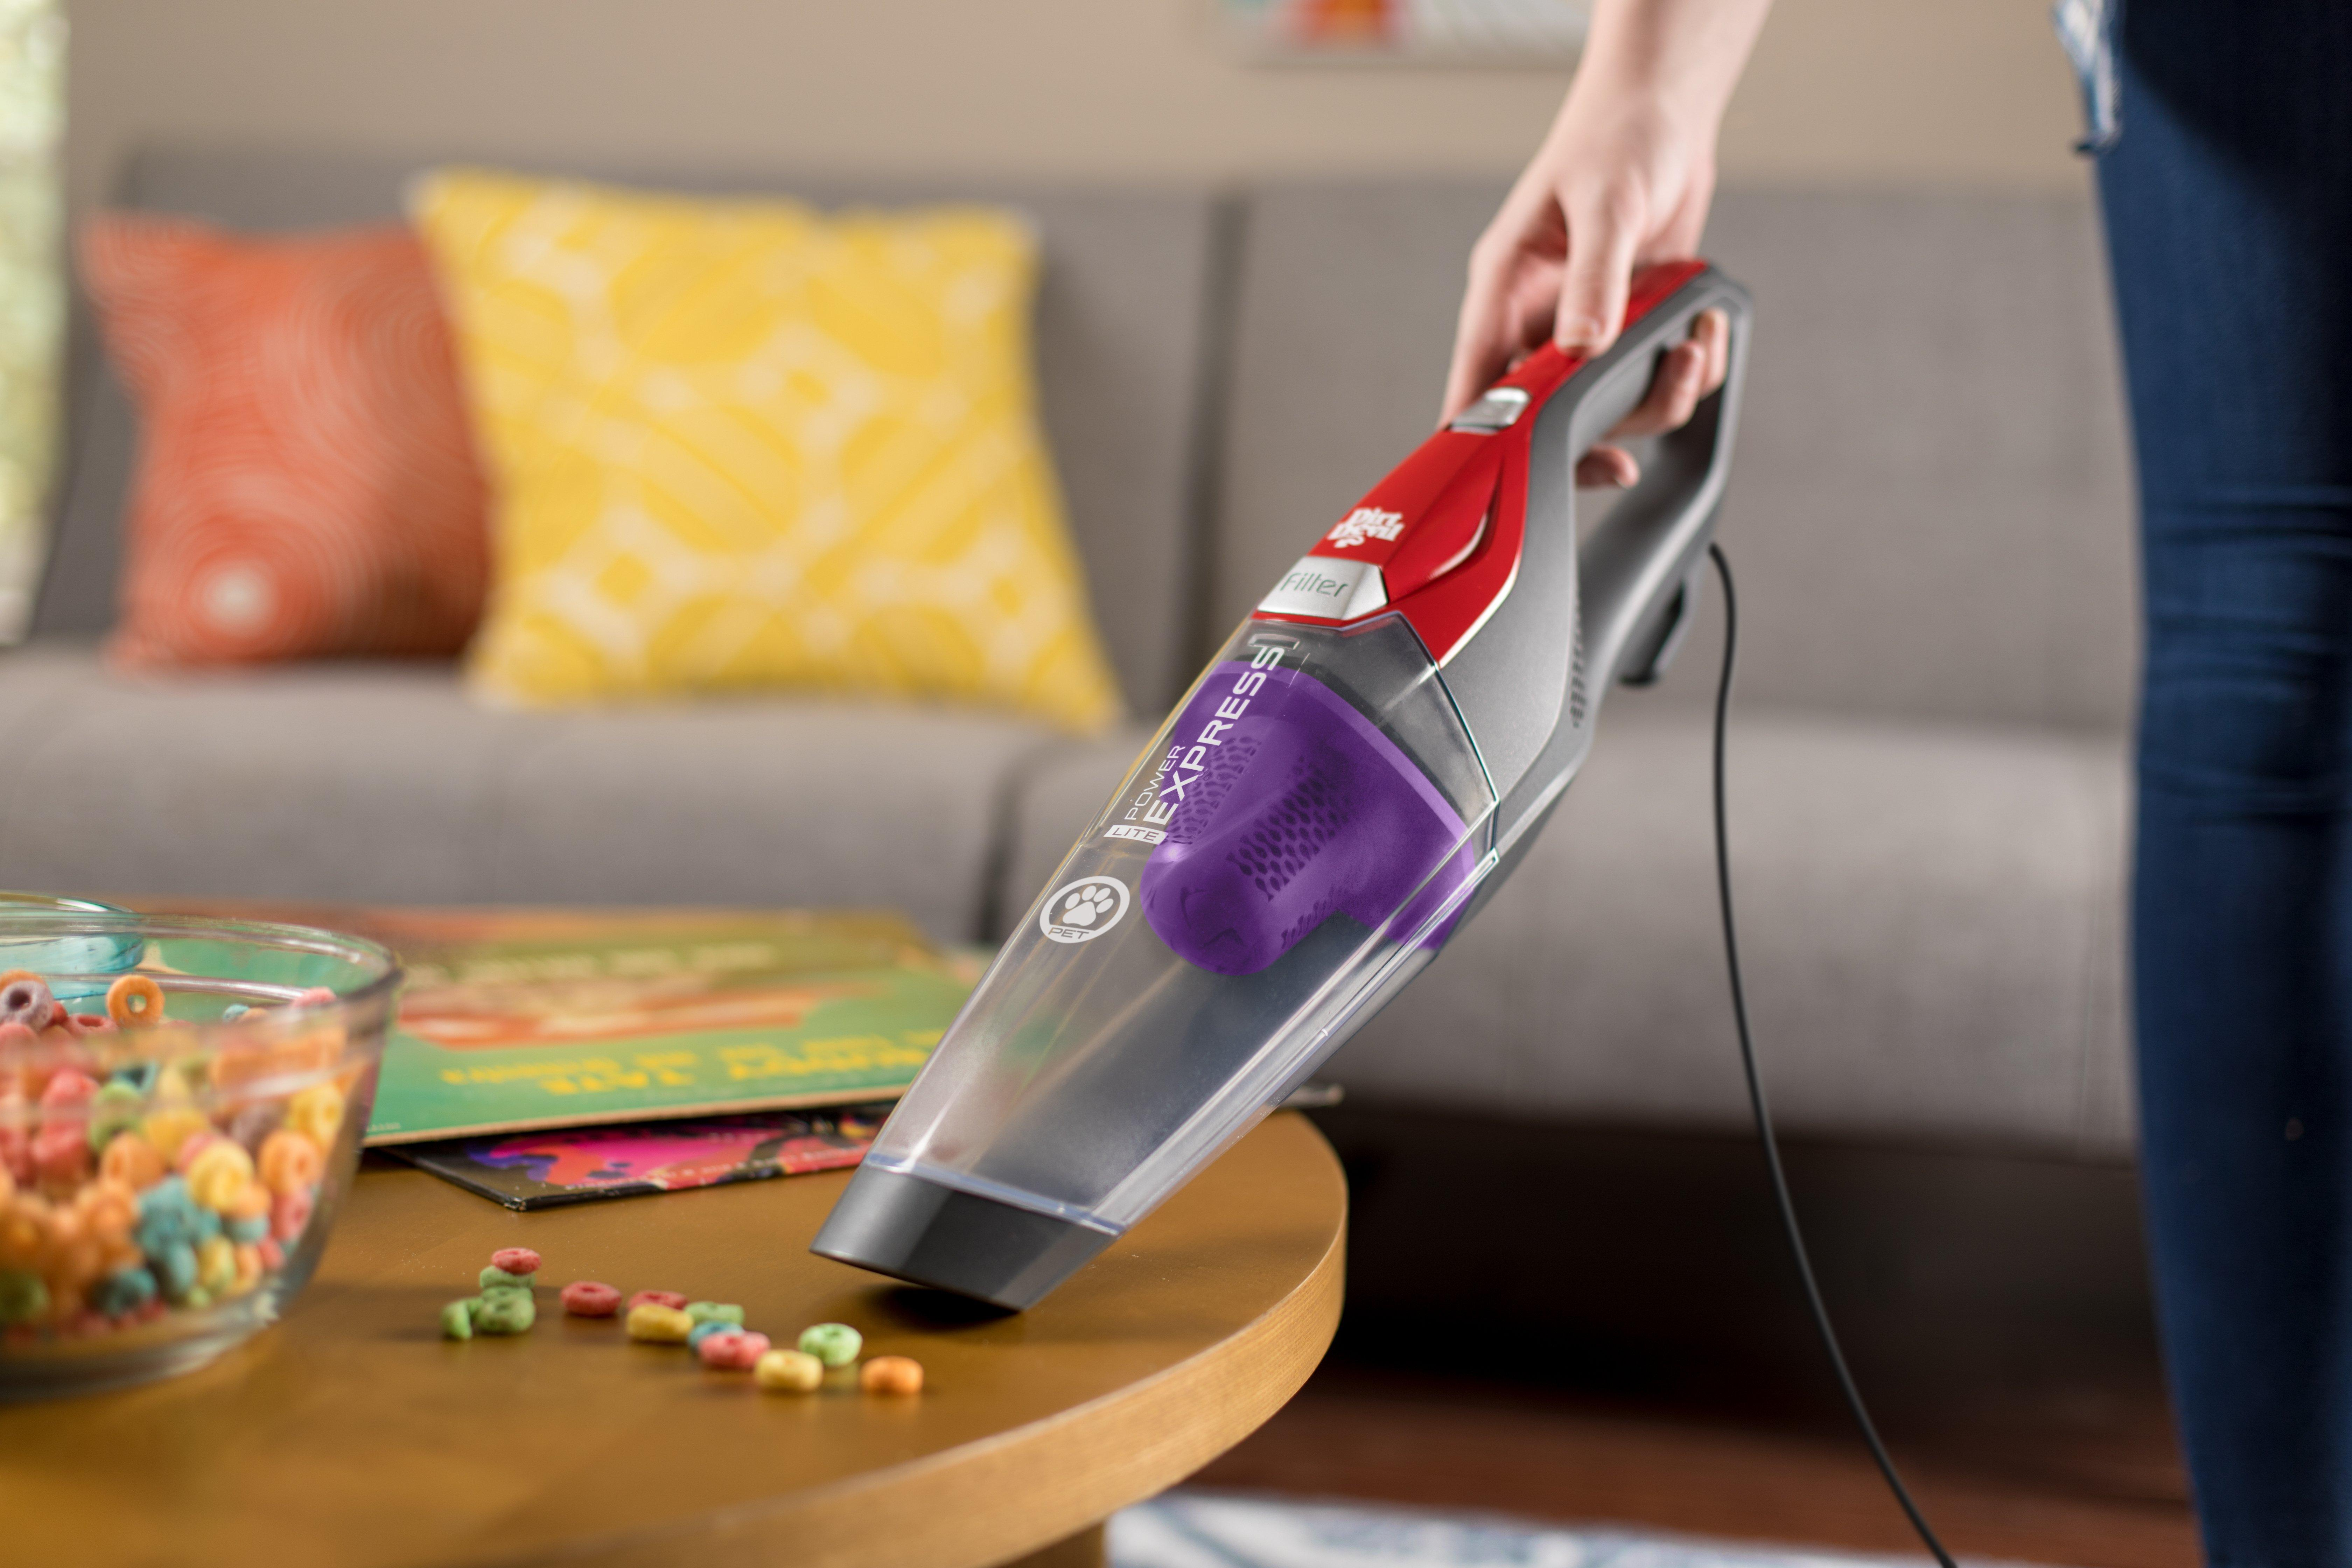 Power Express Lite Pet 3-in-1 Corded Stick Vacuum5